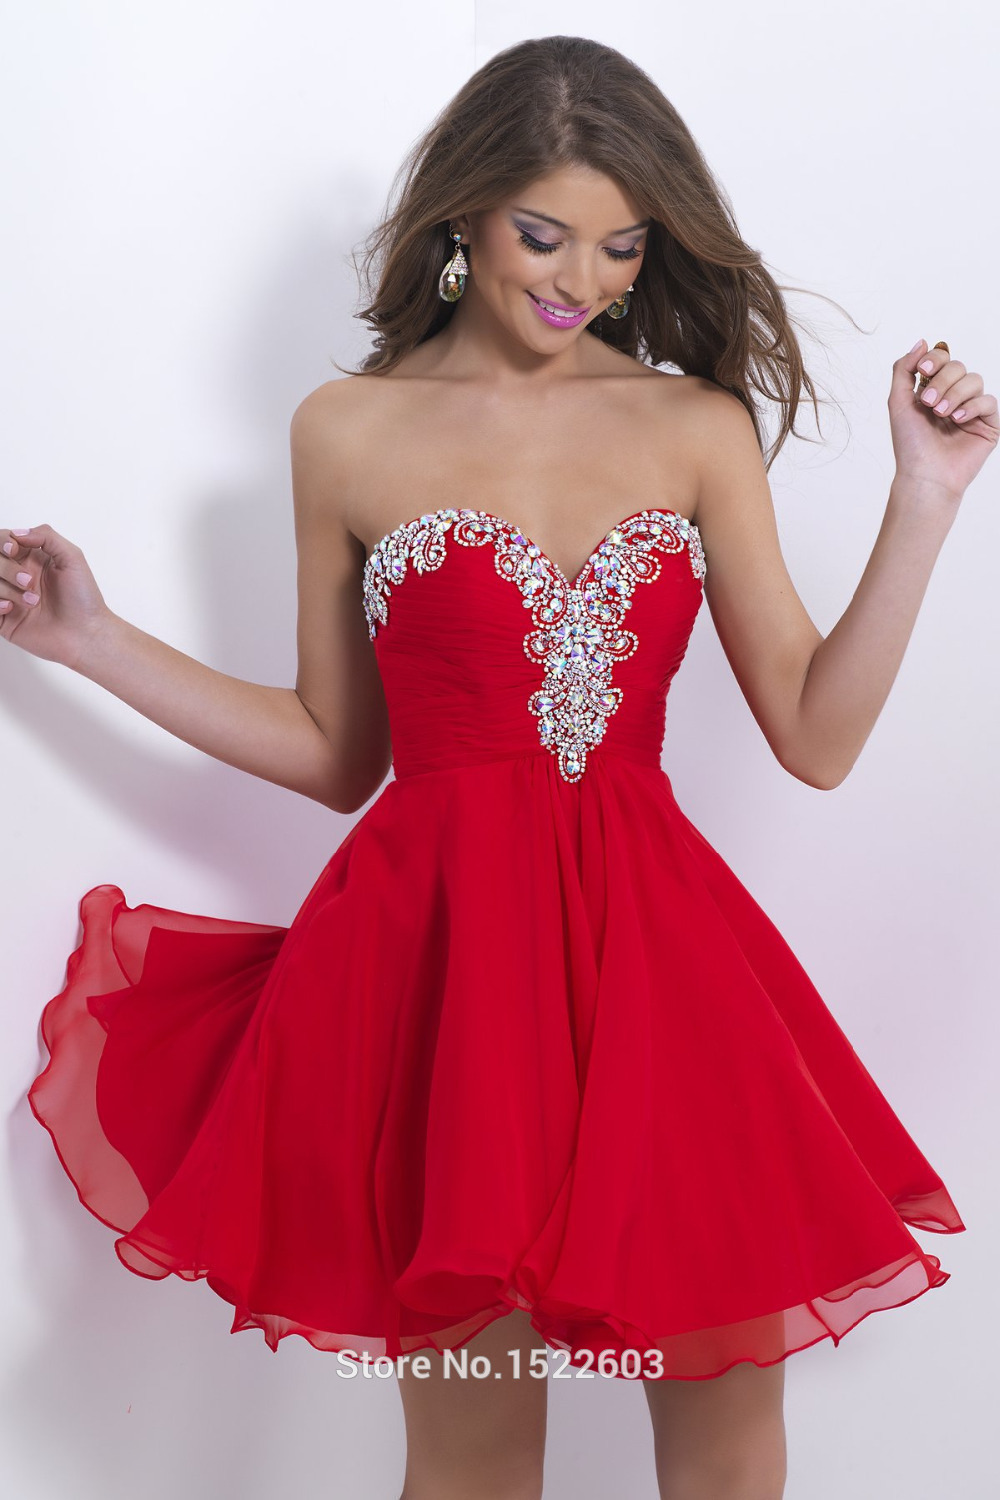 Sexy Red Sweetheart Chiffon Short Prom Dresses 2015 ...